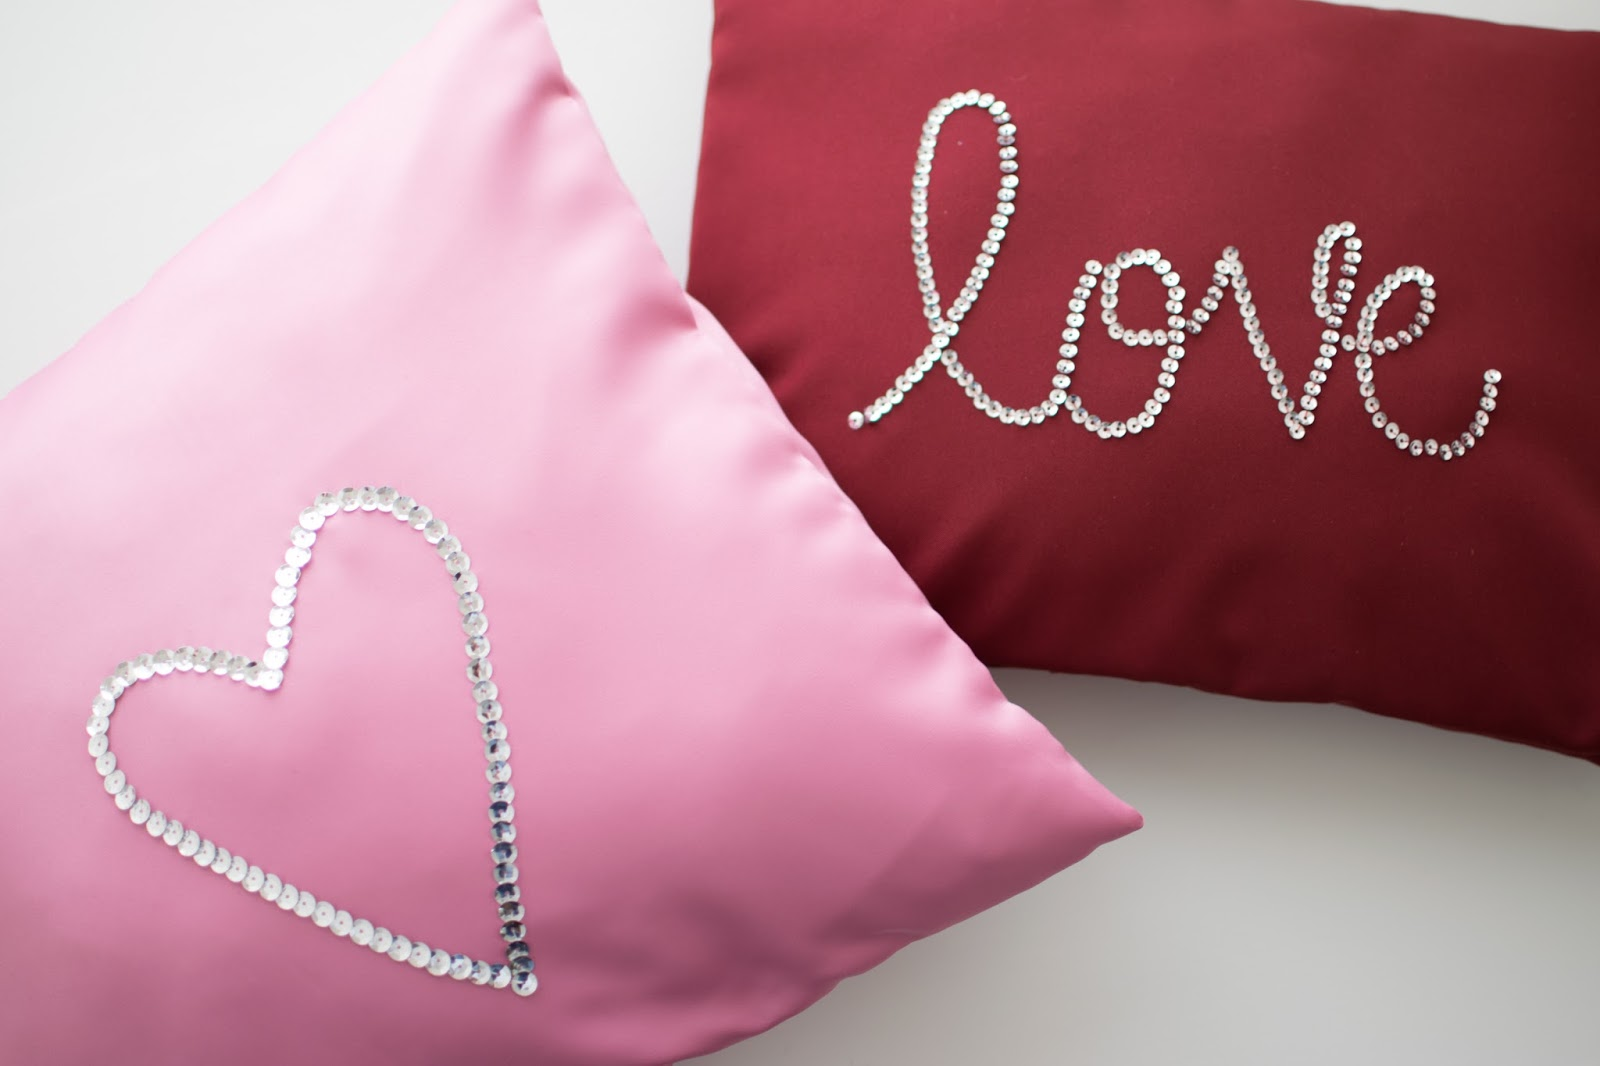 DIY Pillowcase with Overlapping Sequins [Sewing Tutorial]